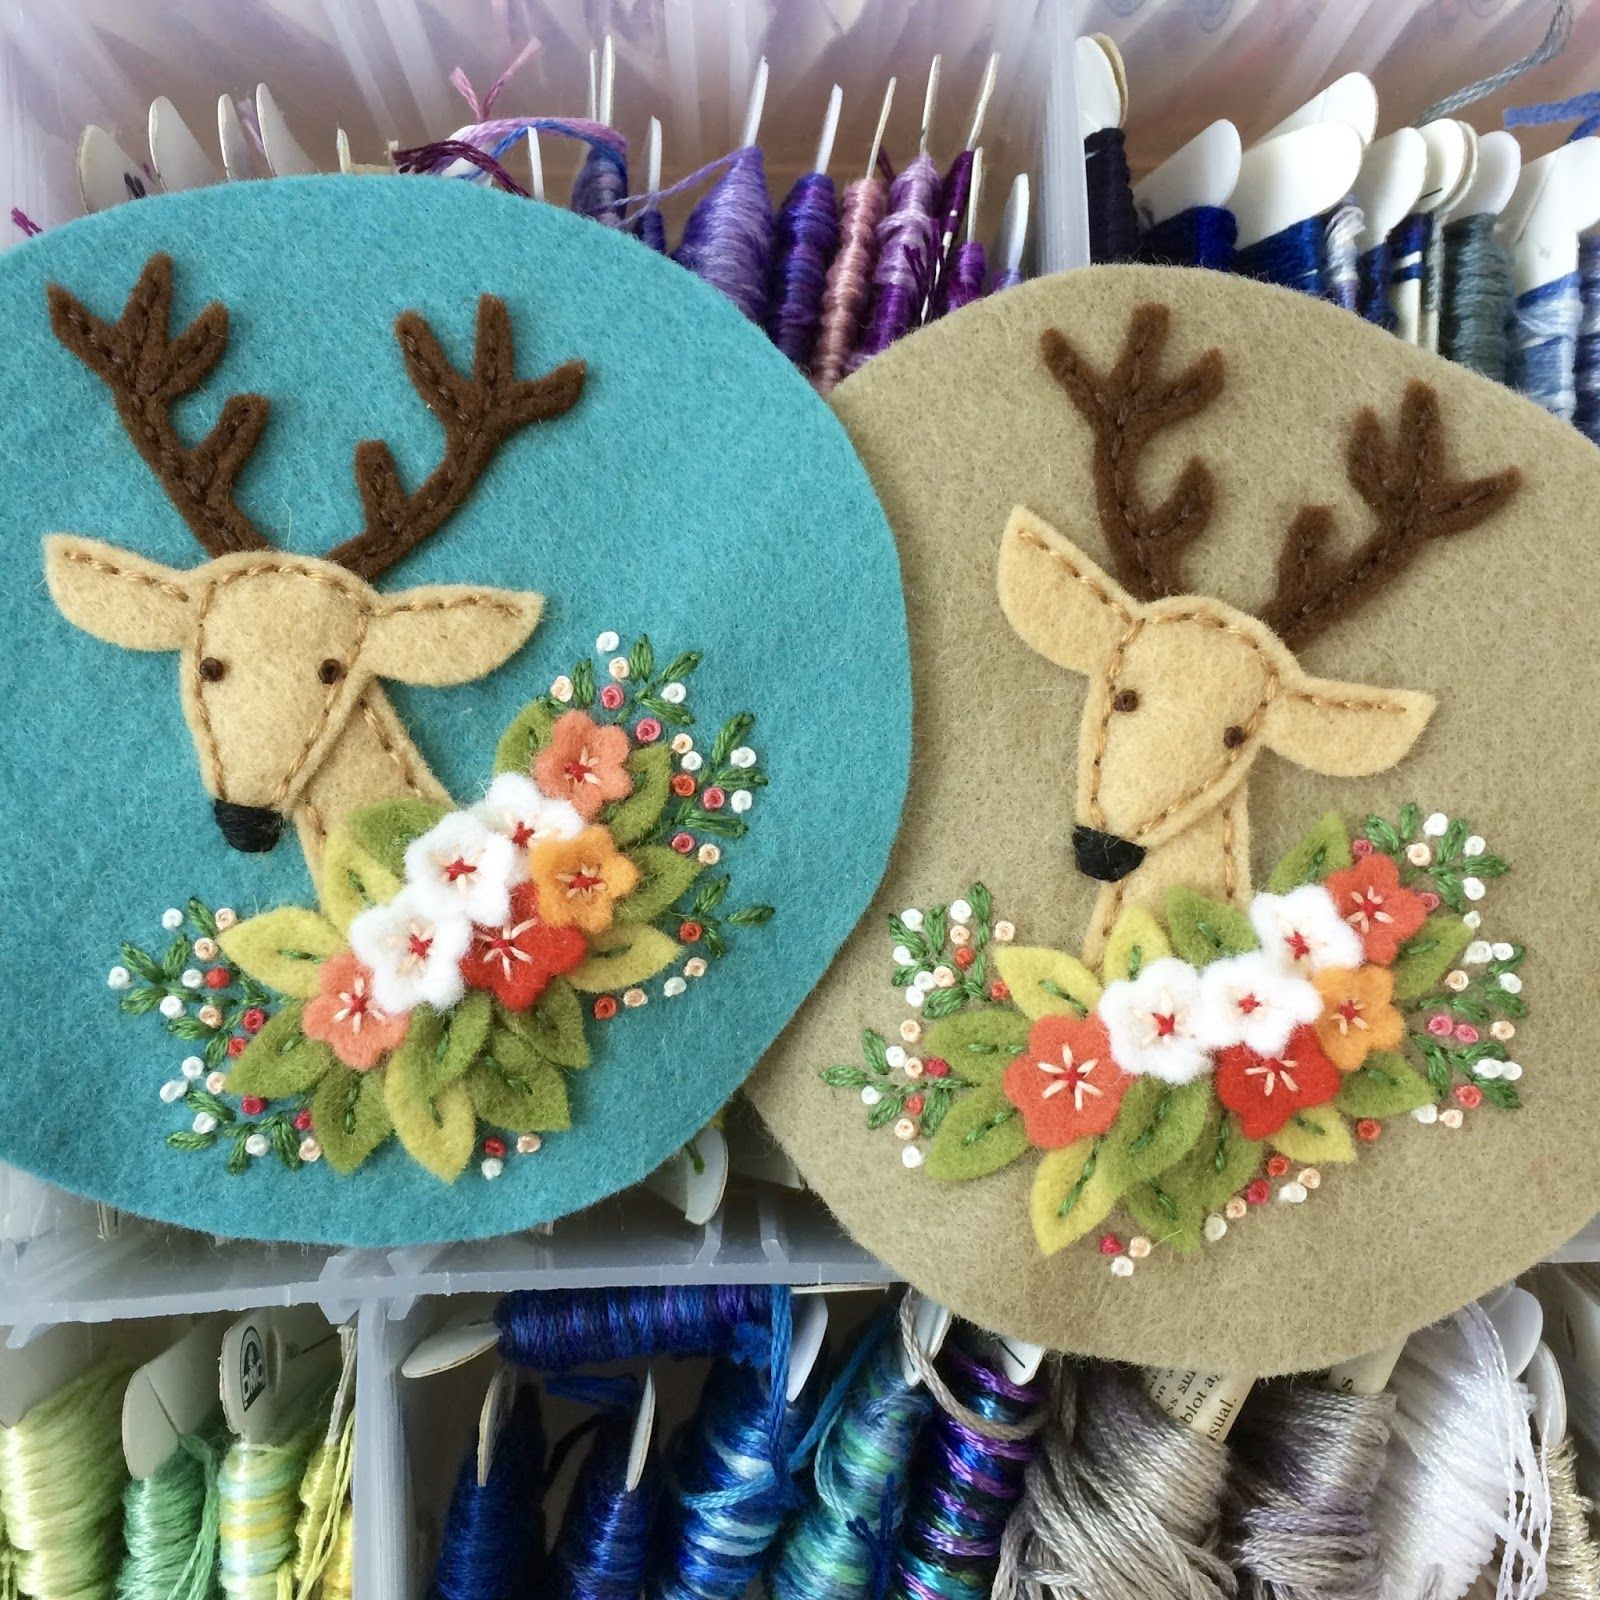 I spent this morning stitching deer pincushion tops. A new friend came over with some handwork of her own and we had a lovely morning of cr...